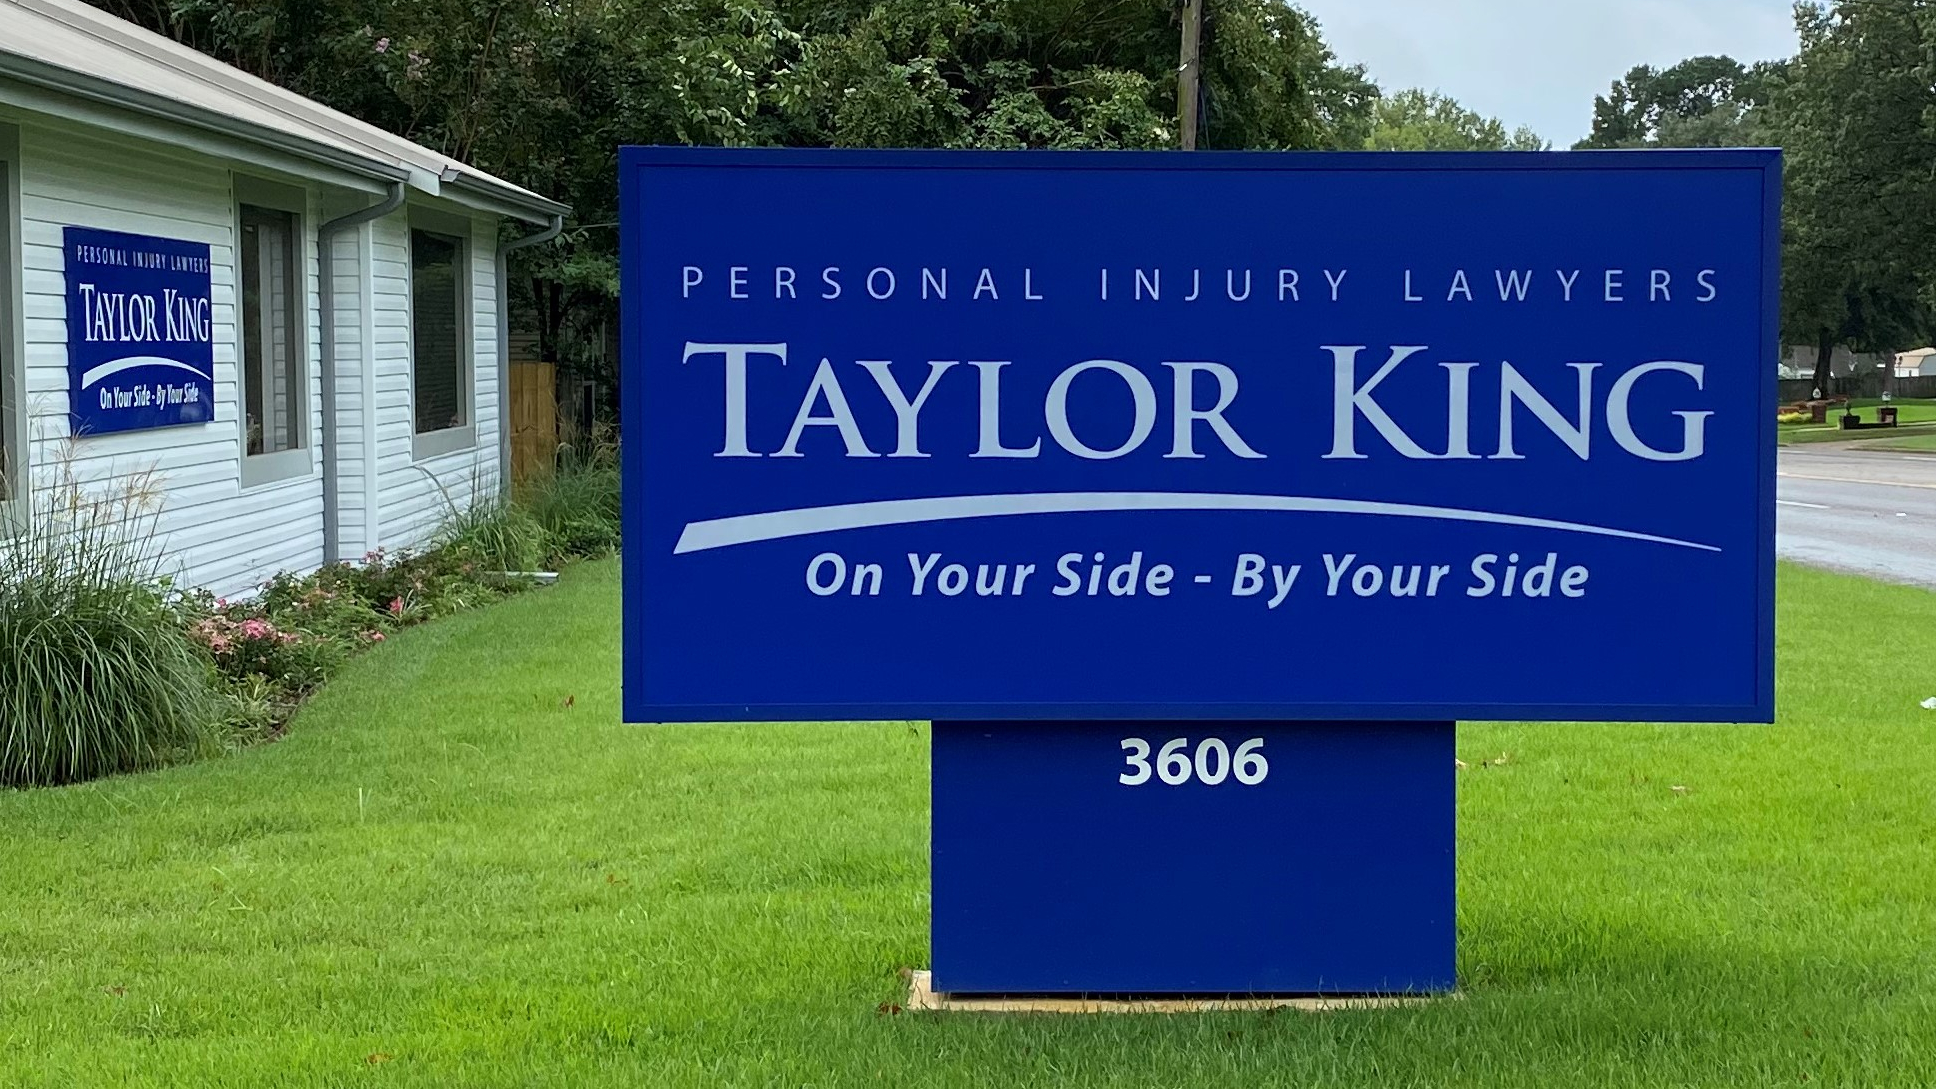 Taylor King Law Celebrates Opening of Texarkana Location with Ribbon-Cutting Event